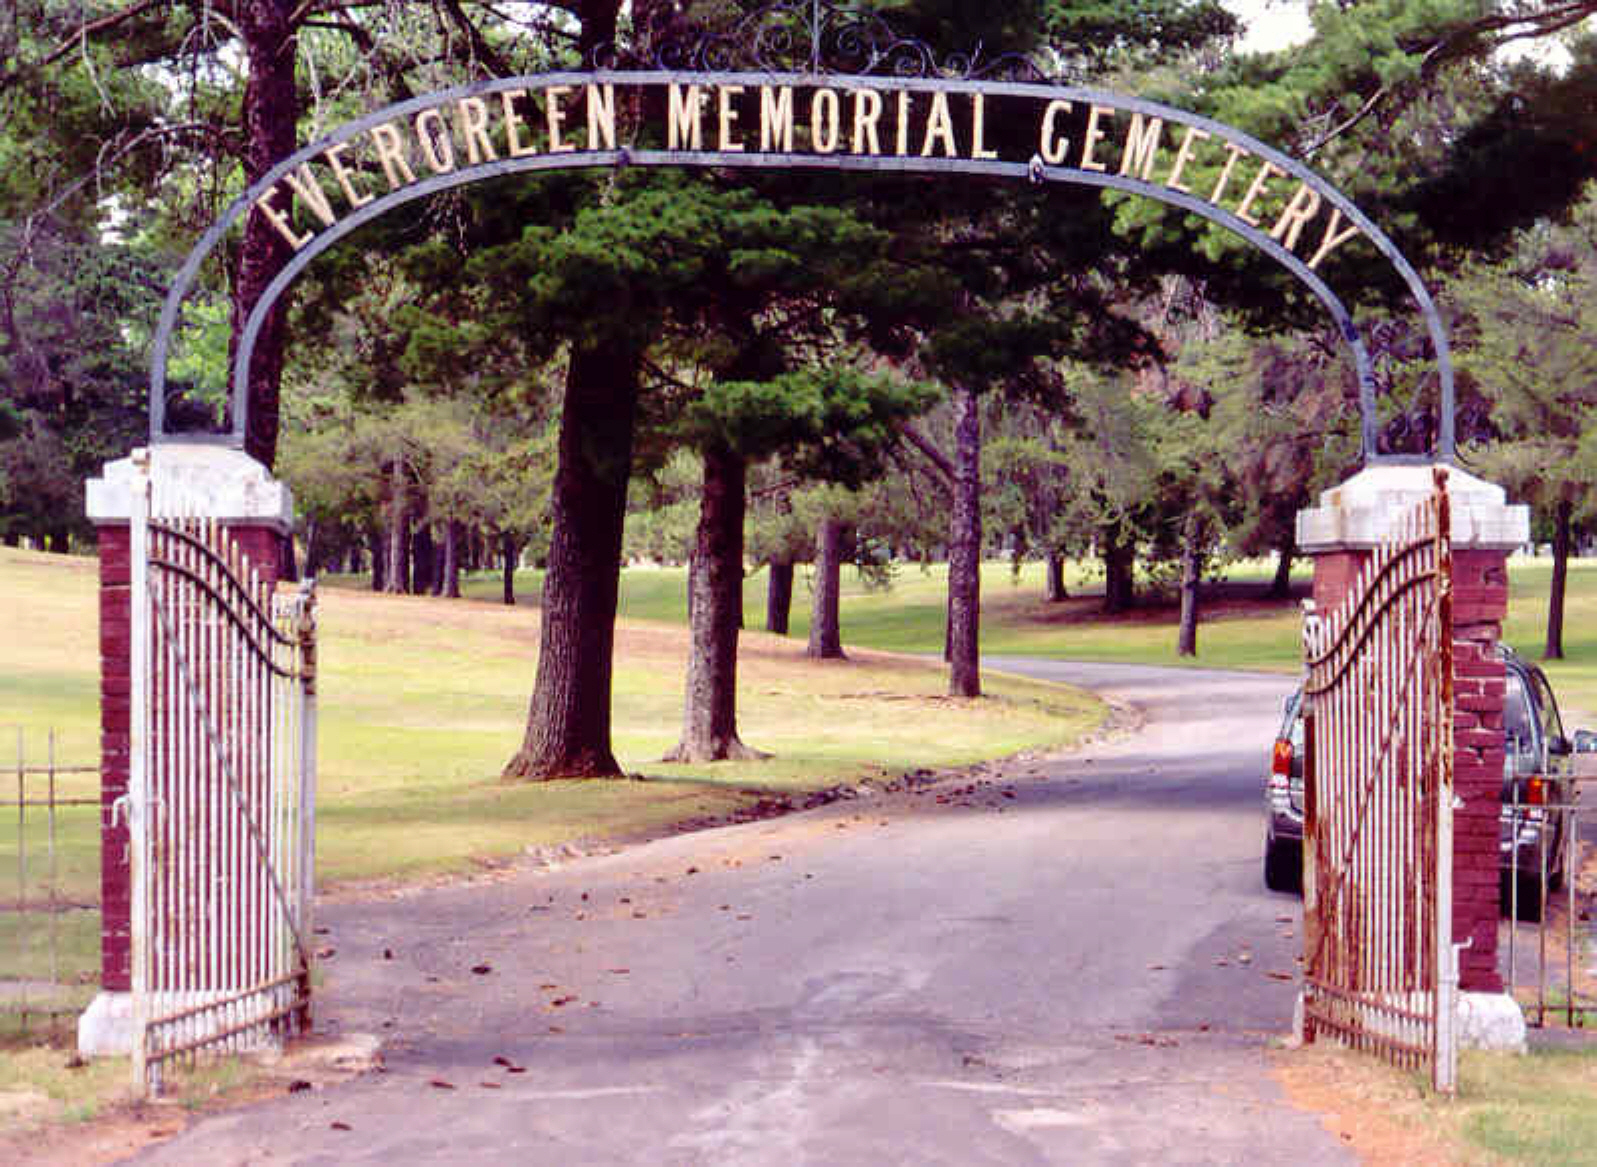 Evergreen Memorial Cemetery AKA Crystal Falls Cemetery